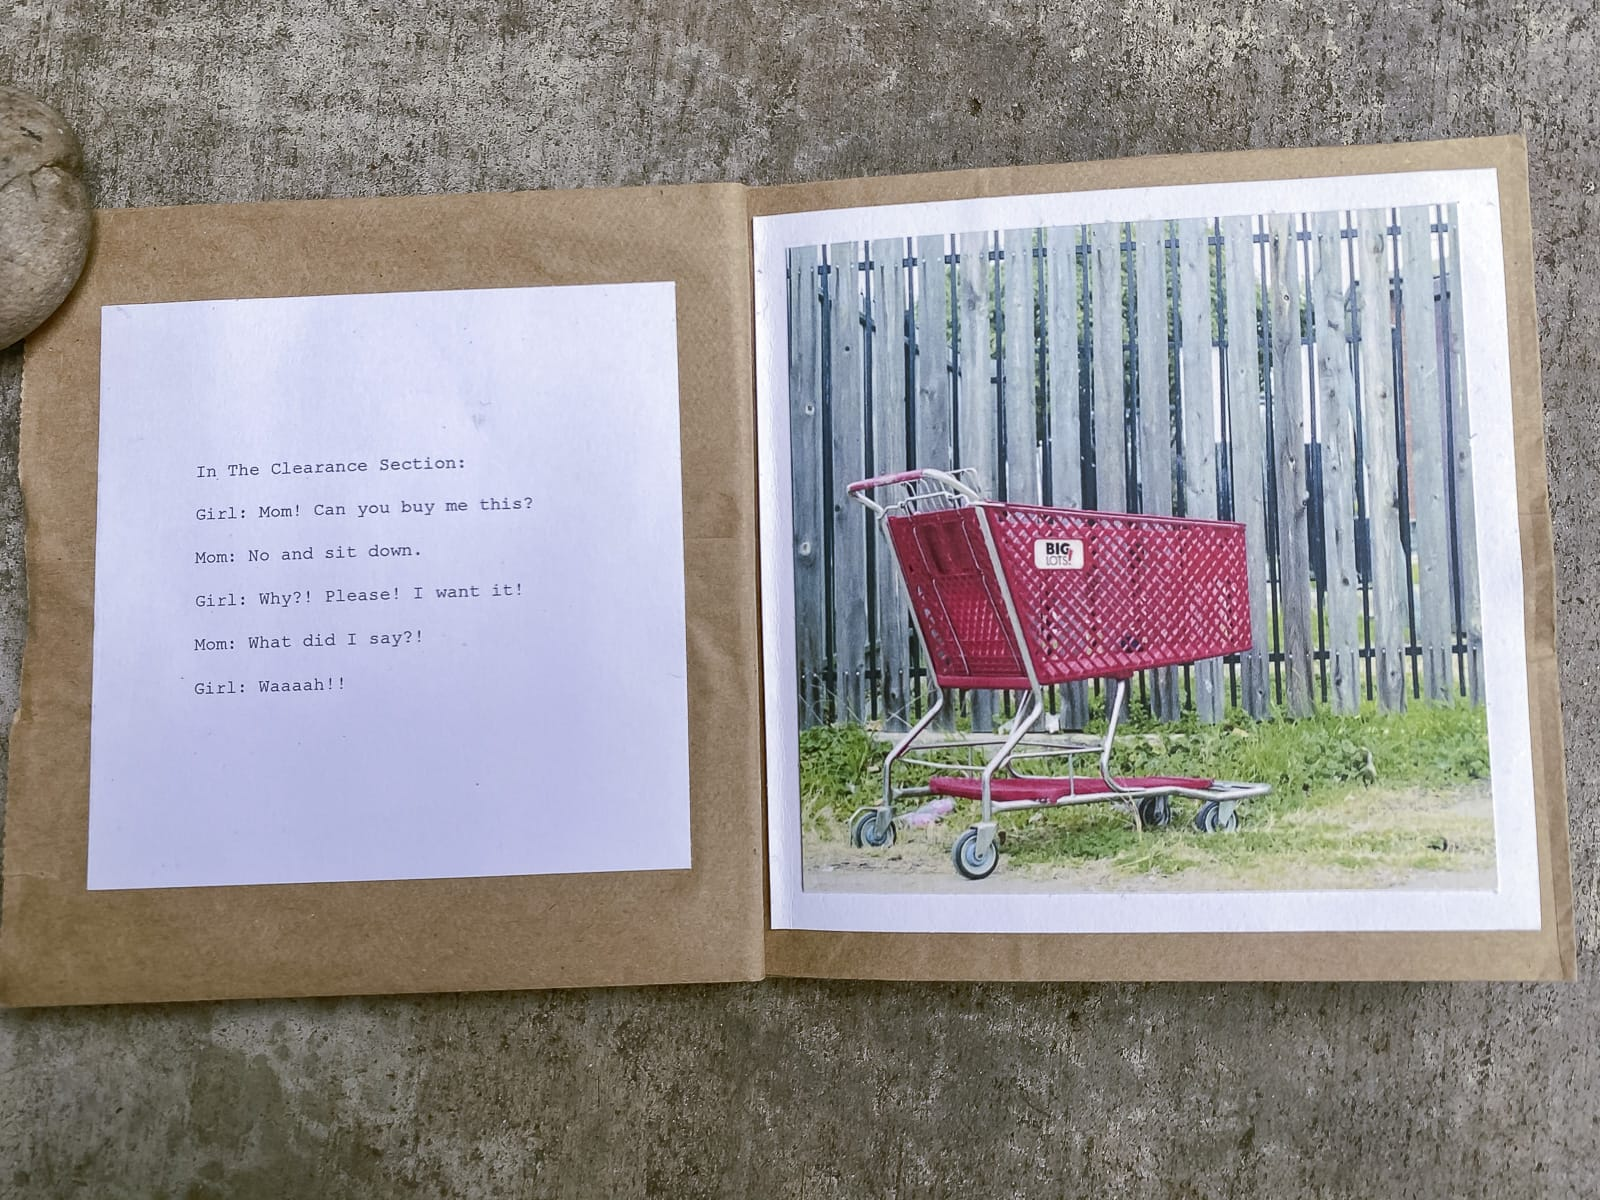 Abandoned Shopping Carts Book Art by Matthew T Rader